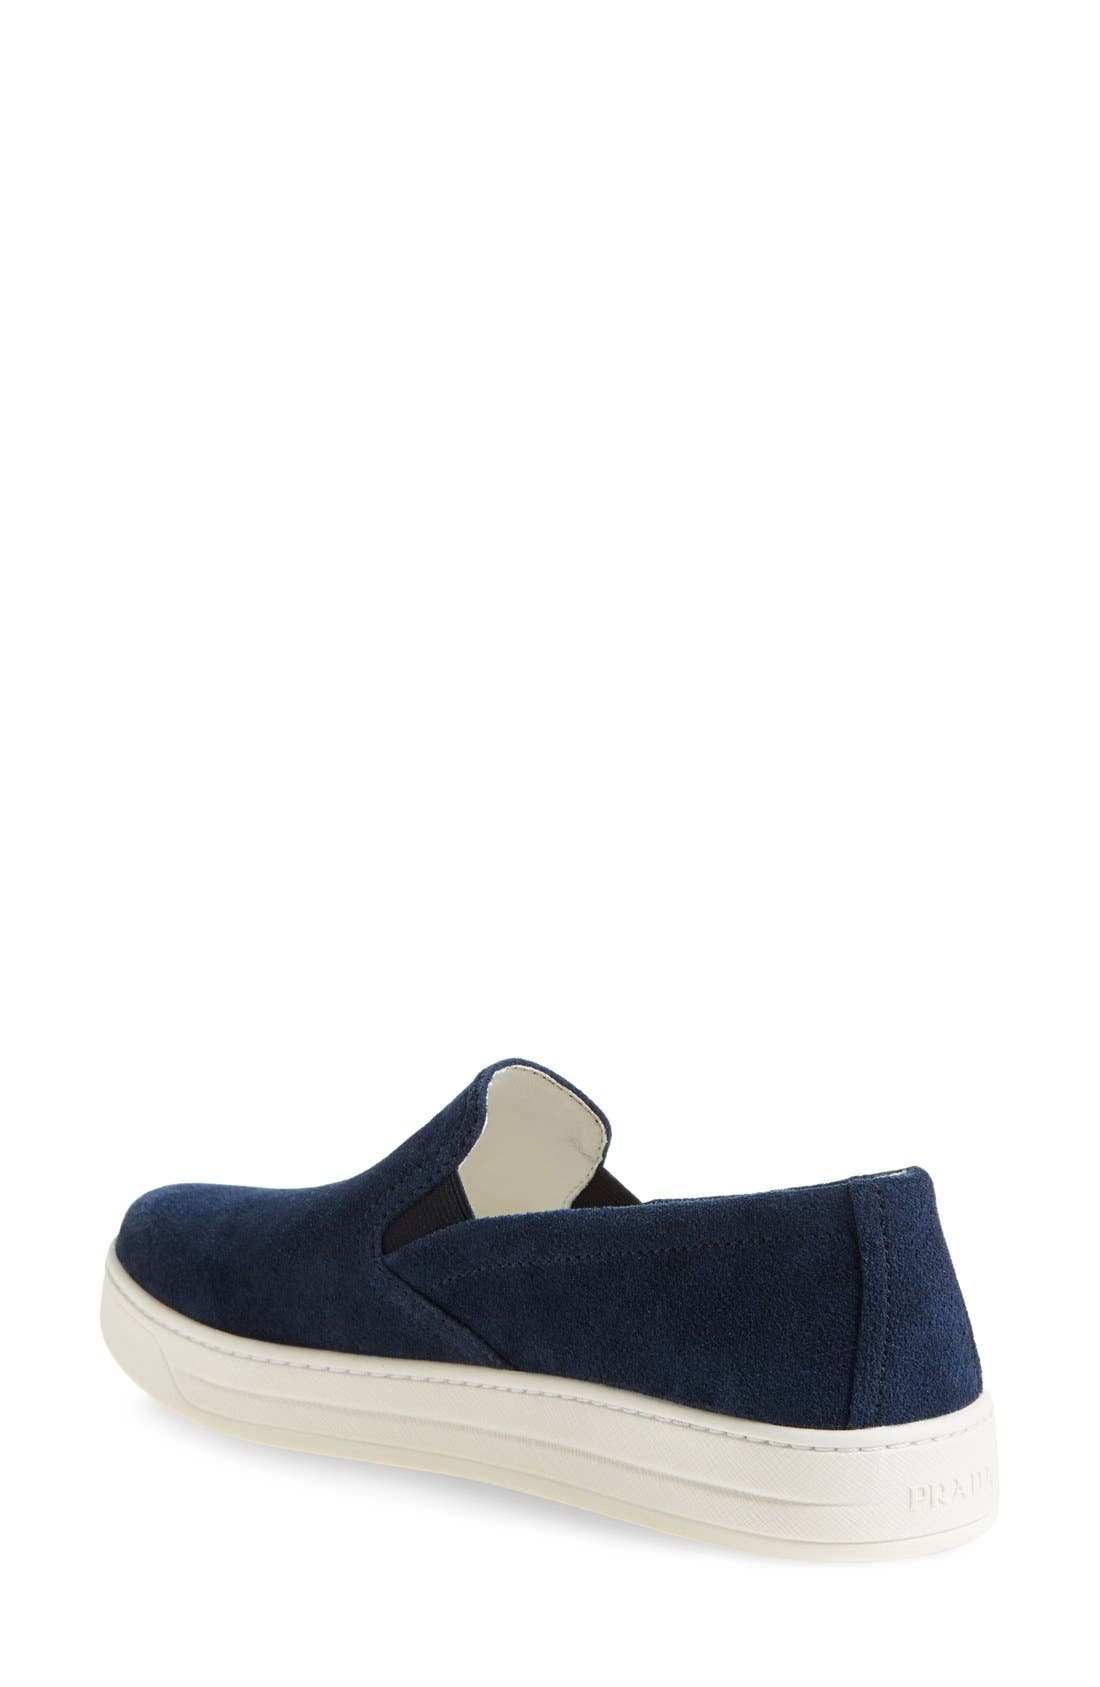 Slip-On Sneaker,                             Alternate thumbnail 38, color,